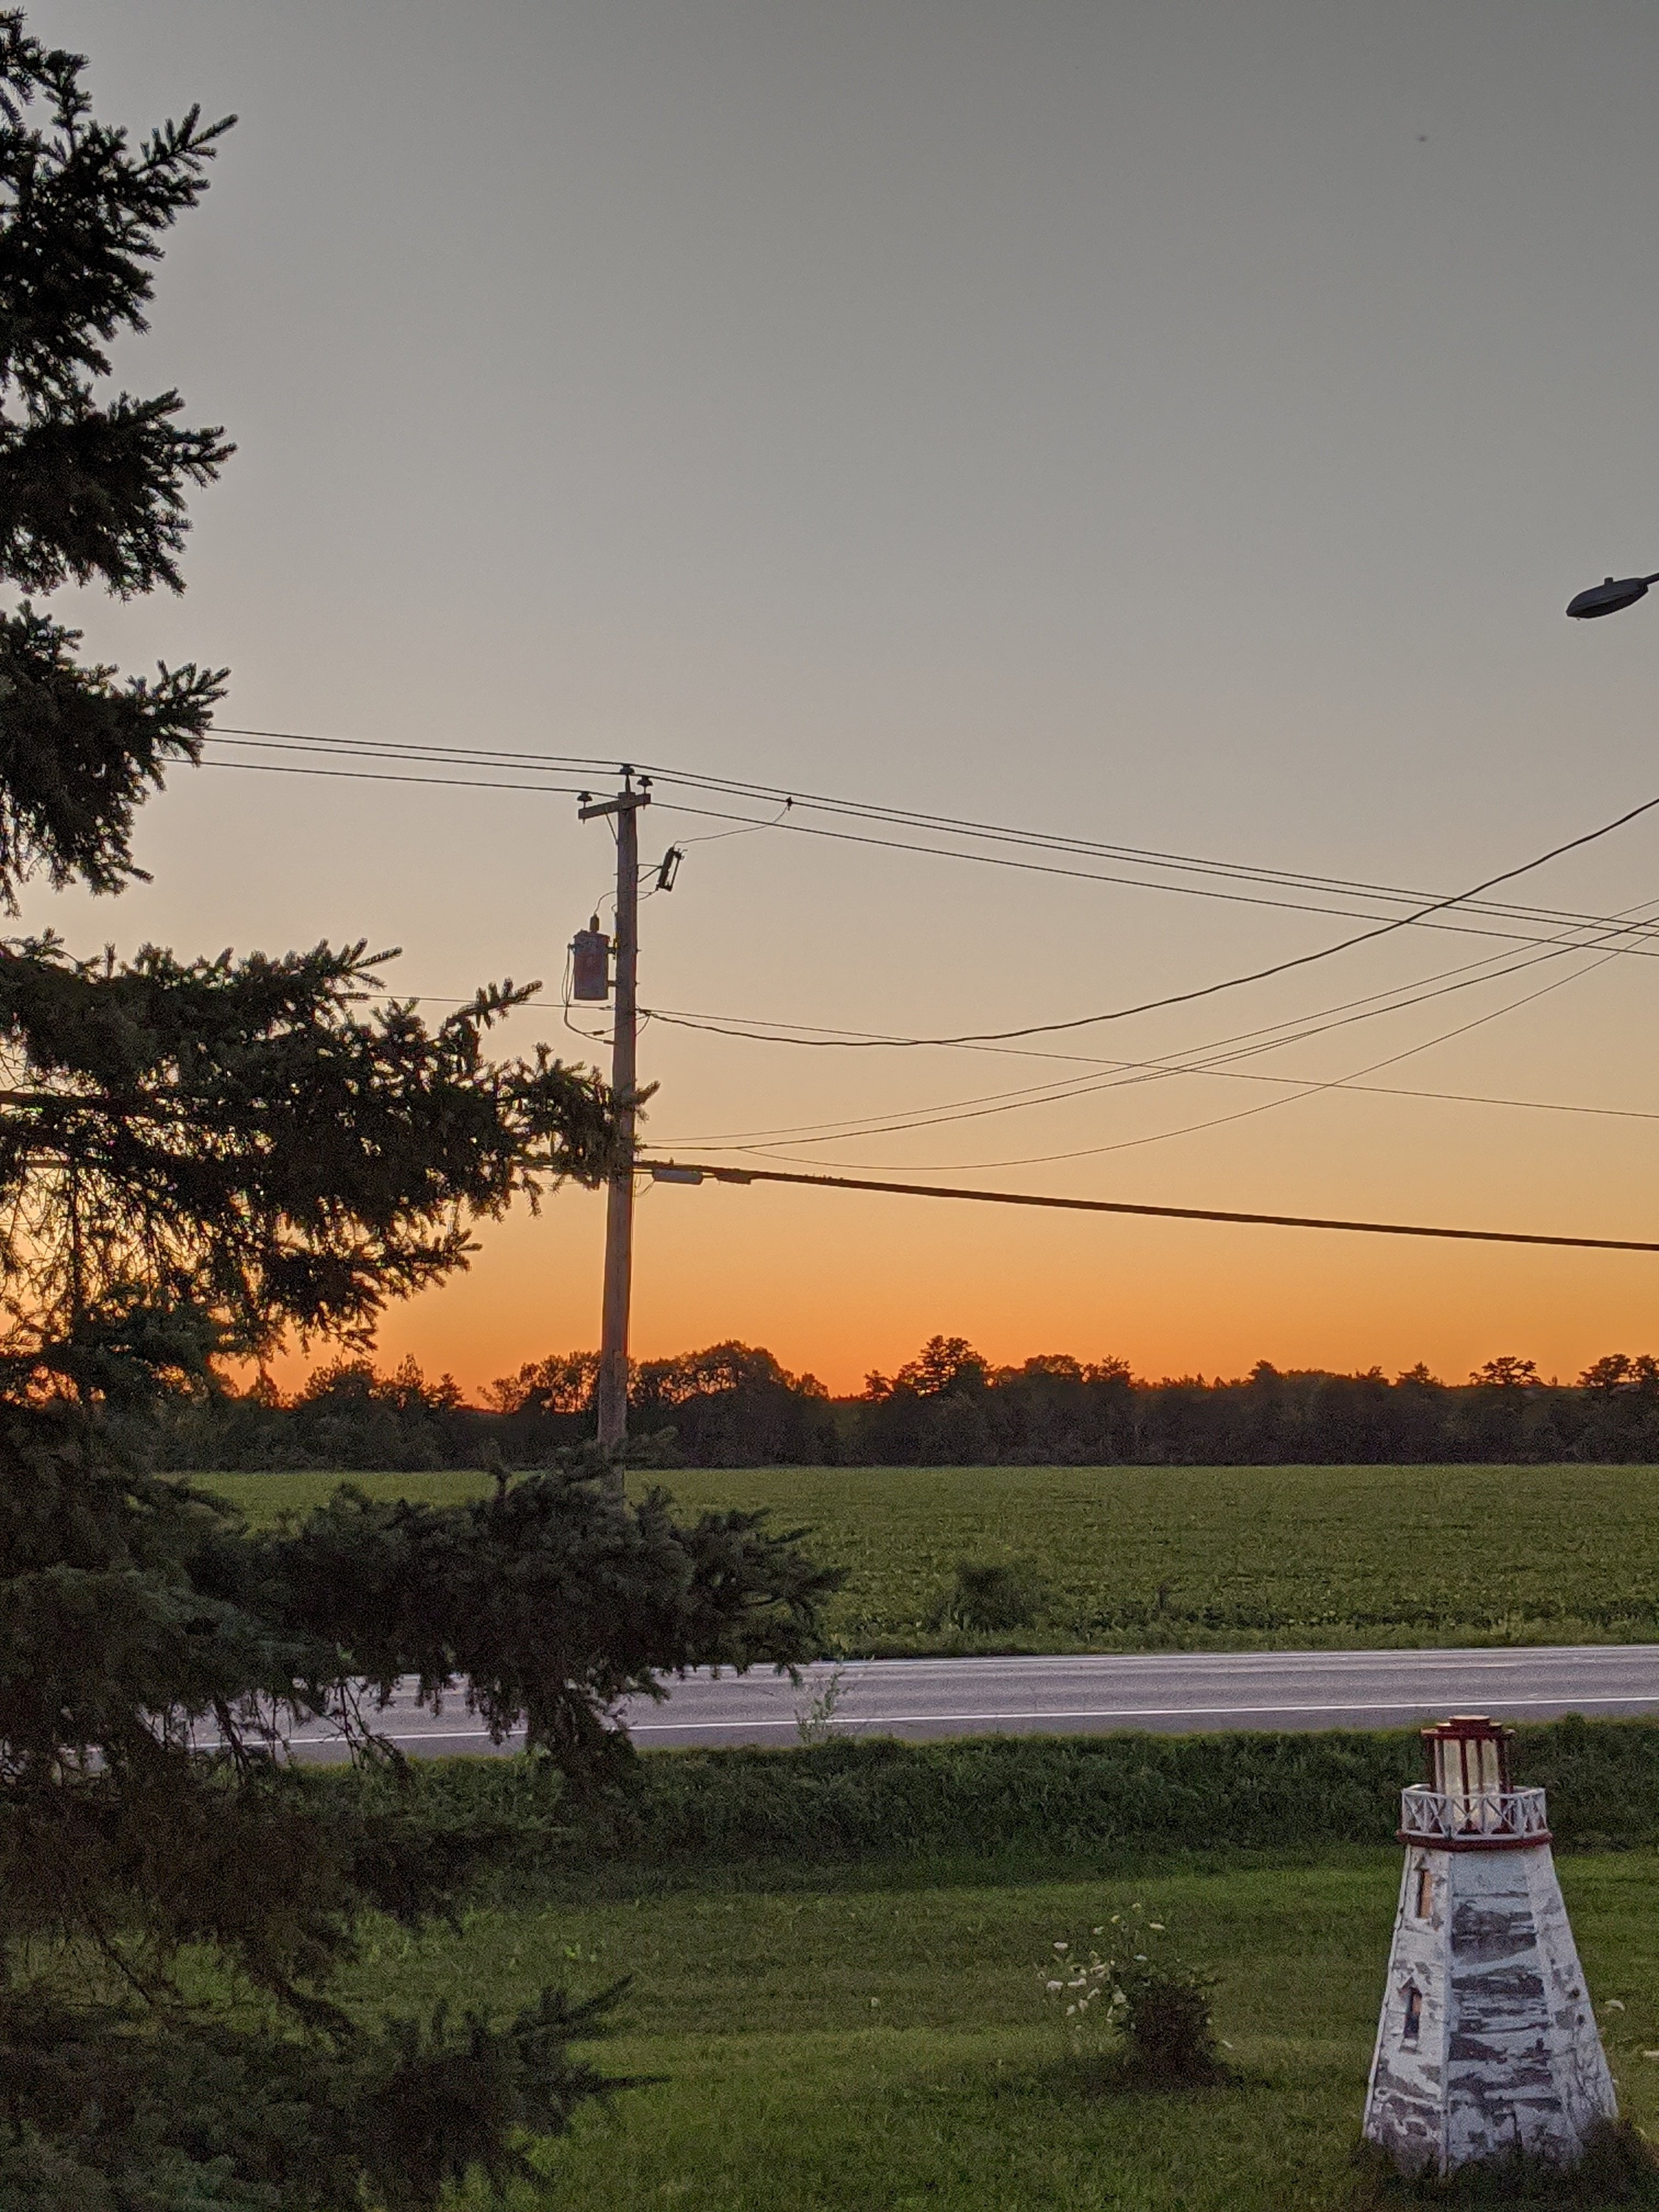 orange sunset glow over a country field and a yard with a lighthouse lawn ornament and large spruce tree